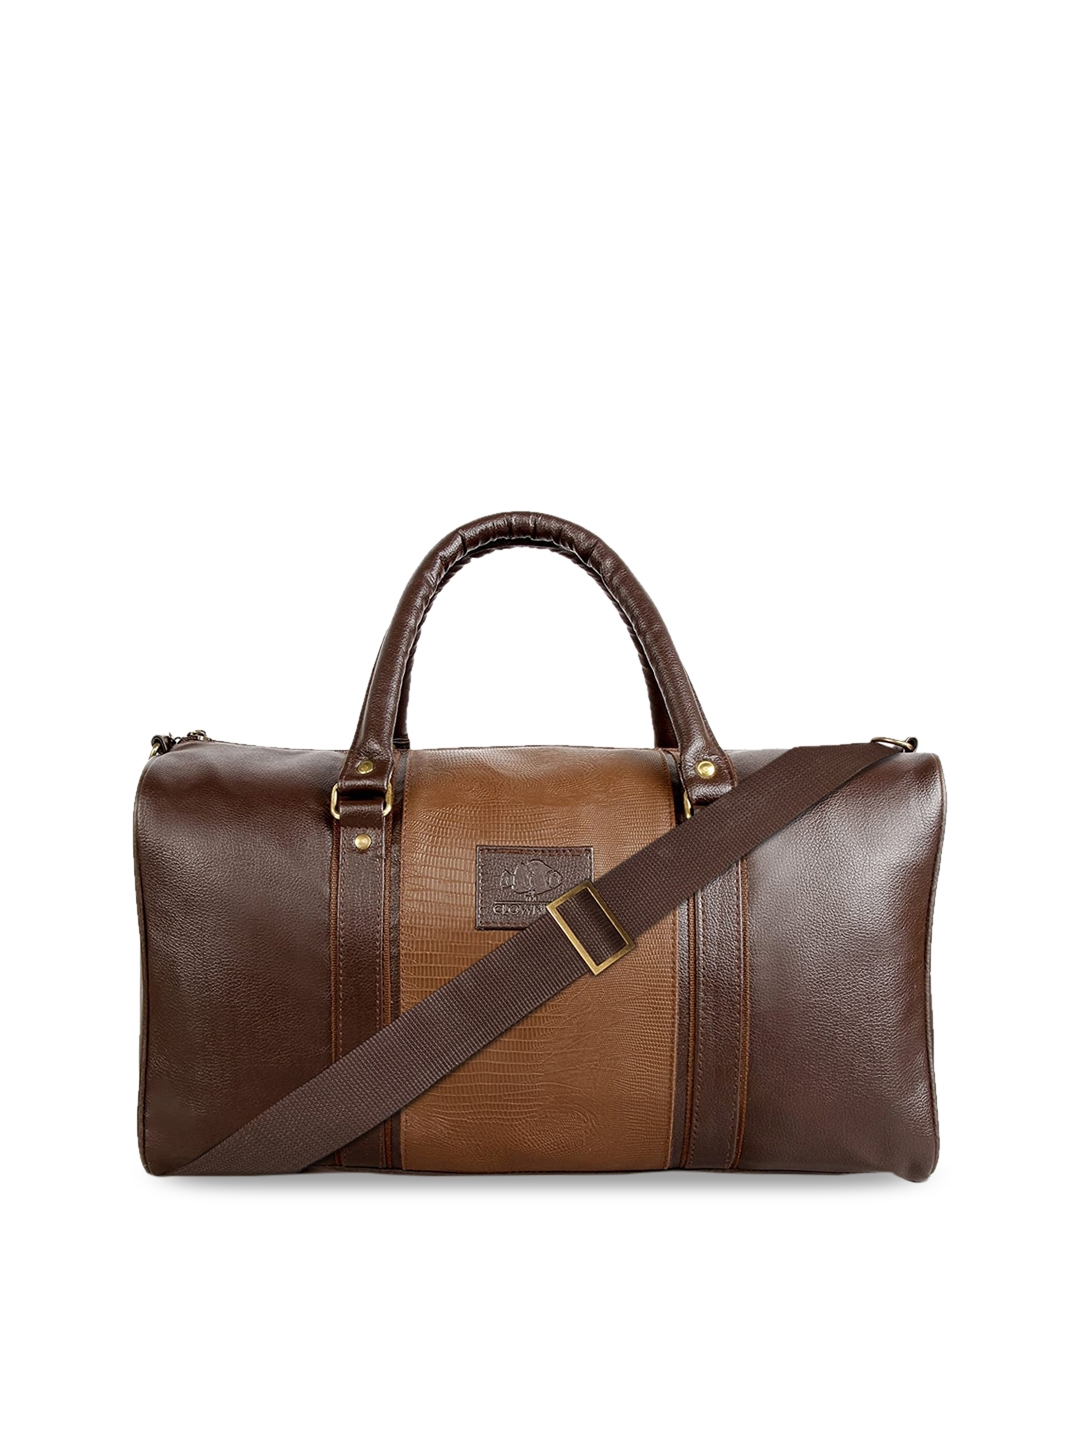 THE CLOWNFISH Unisex Brown Textured Ambiance Duffel Bag